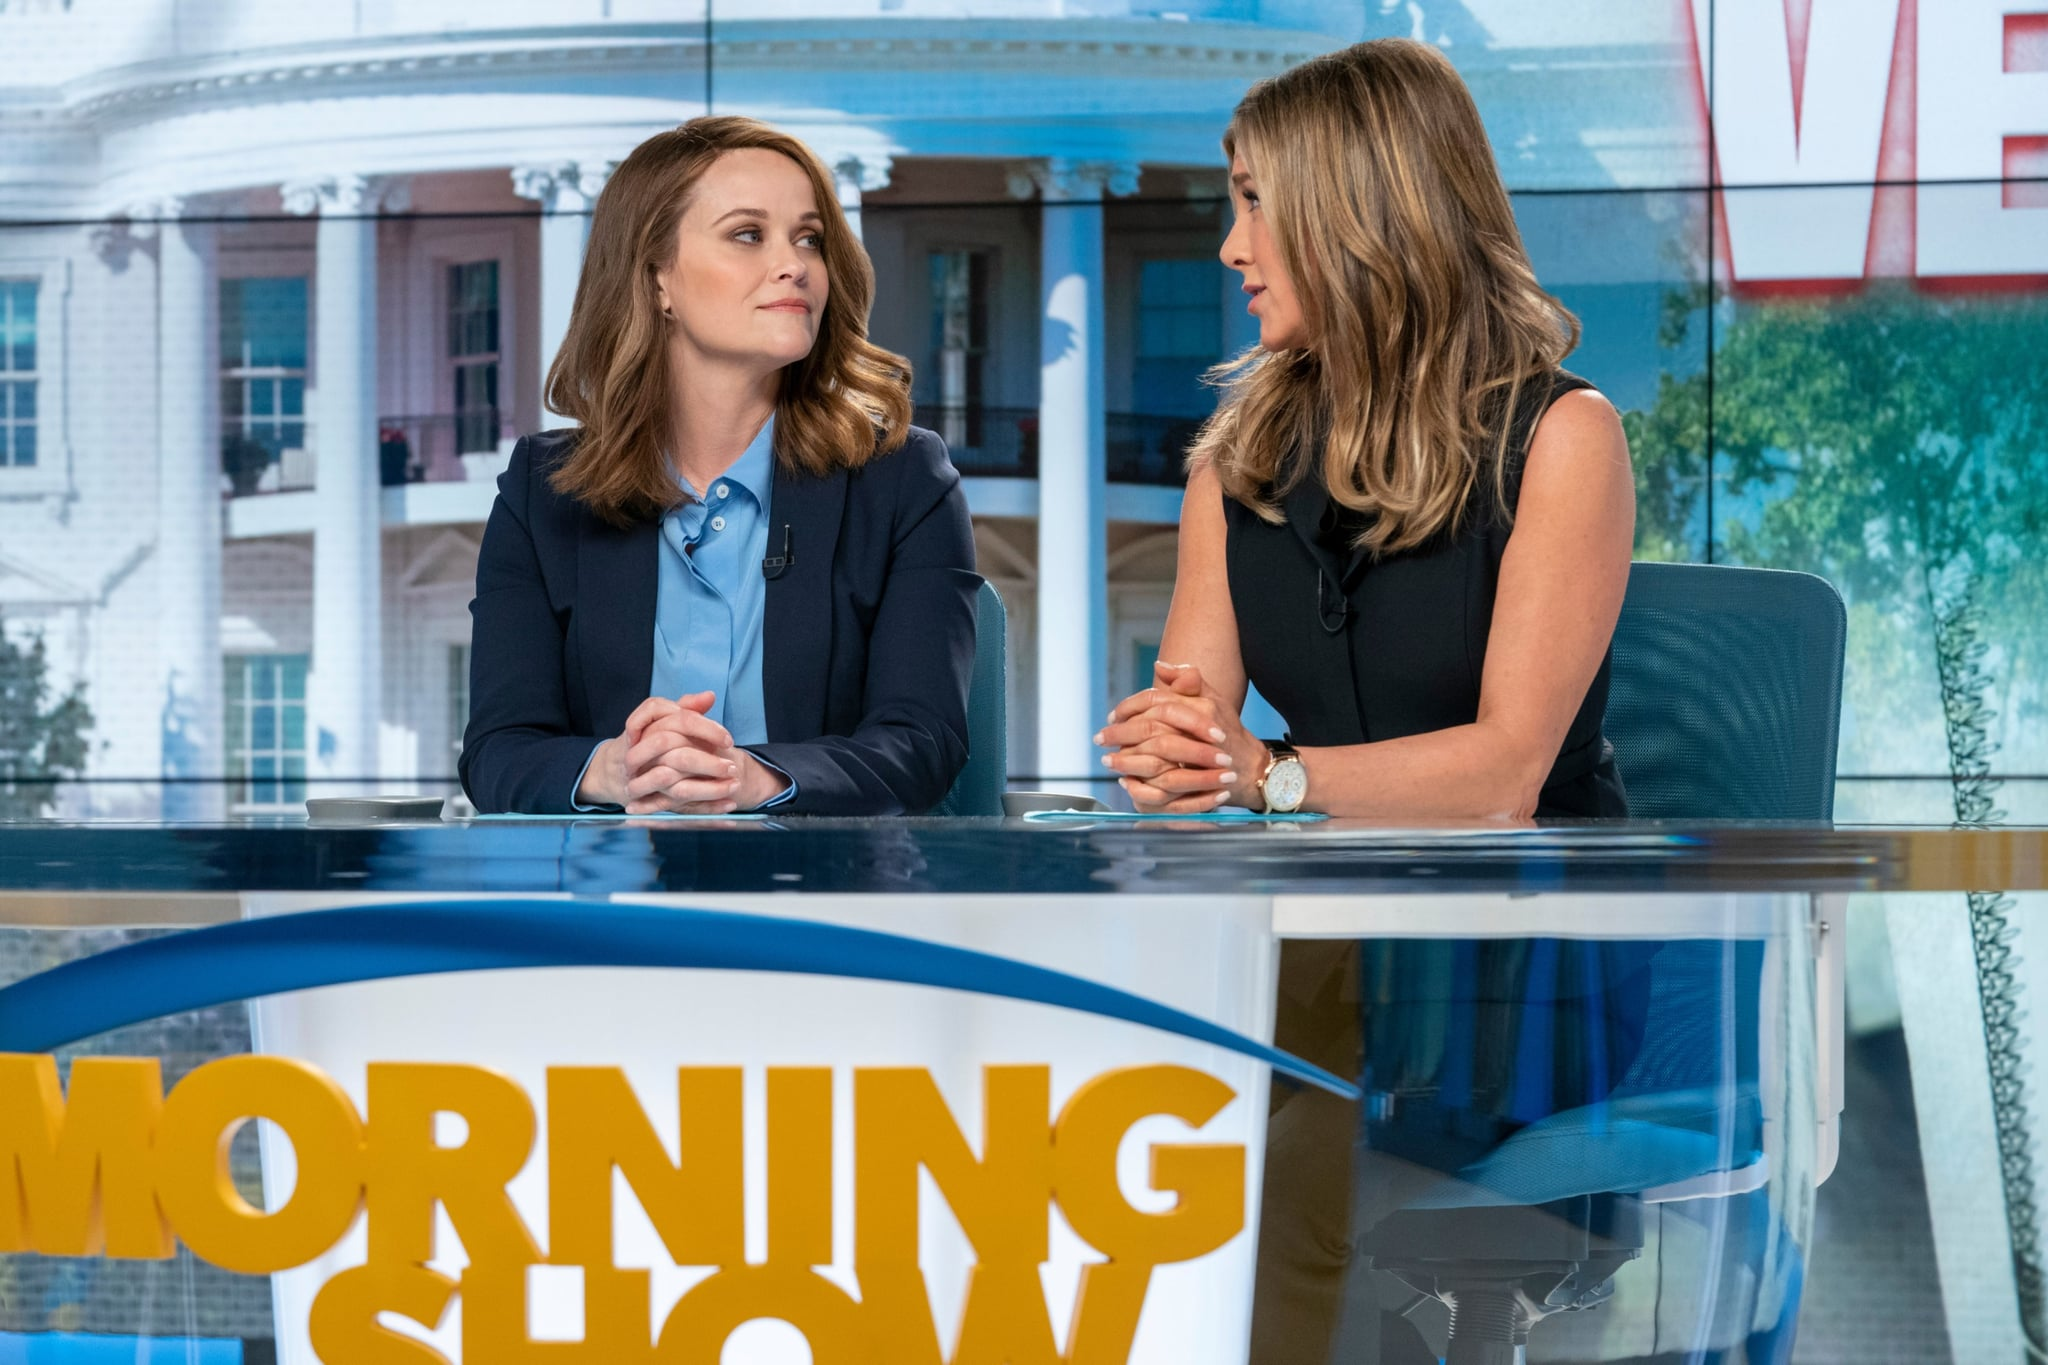 THE MORNING SHOW, from left: Reese Witherspoon, Jennifer Aniston, 'Open Waters', (Season 1, ep. 107, aired Nov. 29, 2019). photo: Apple TV+ / Courtesy Everett Collection